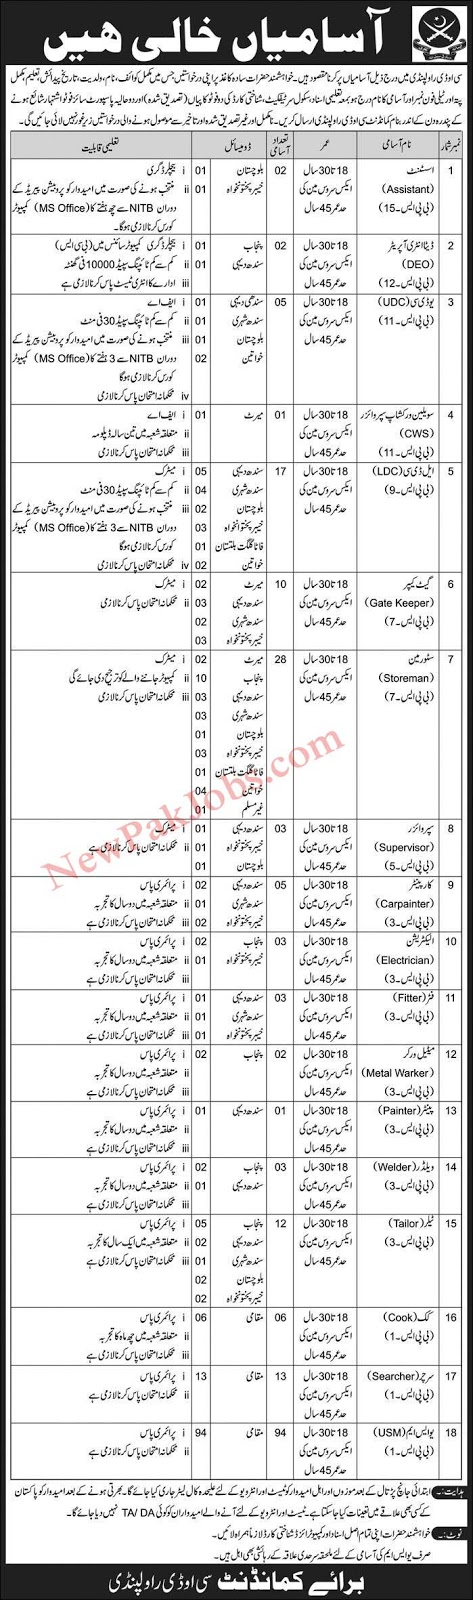 COD Rawalpindi Jobs